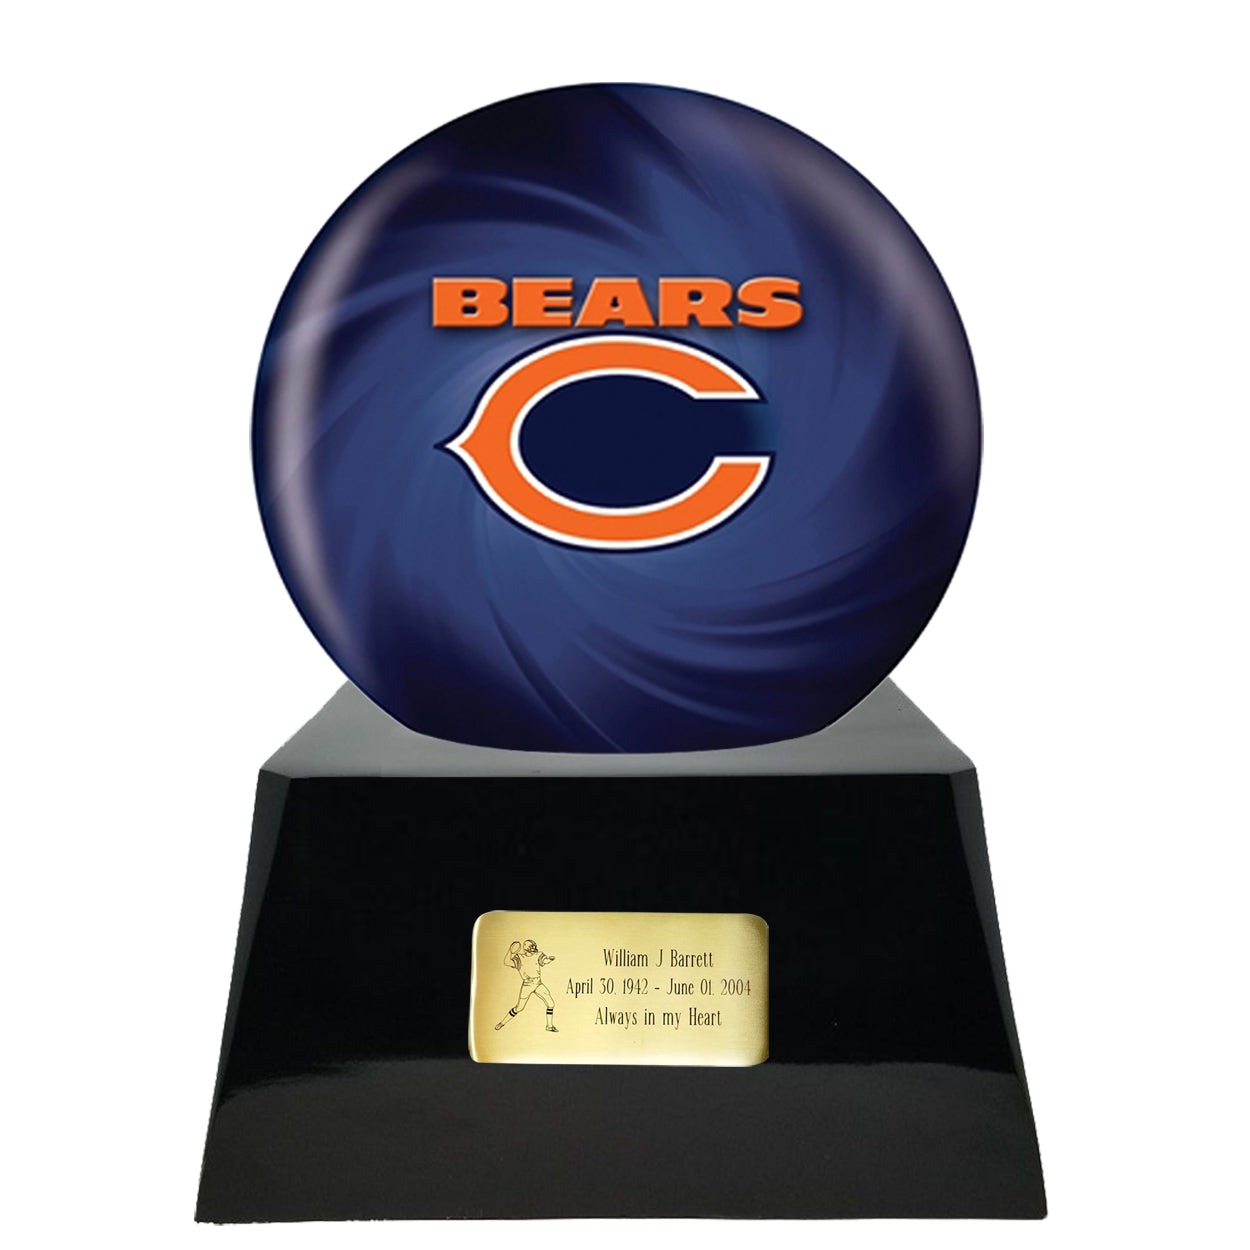 Football Team Cremation Urn - Football Cremation Urn and Chicago Bears Ball Decor with Custom Metal Plaque data-image-id=